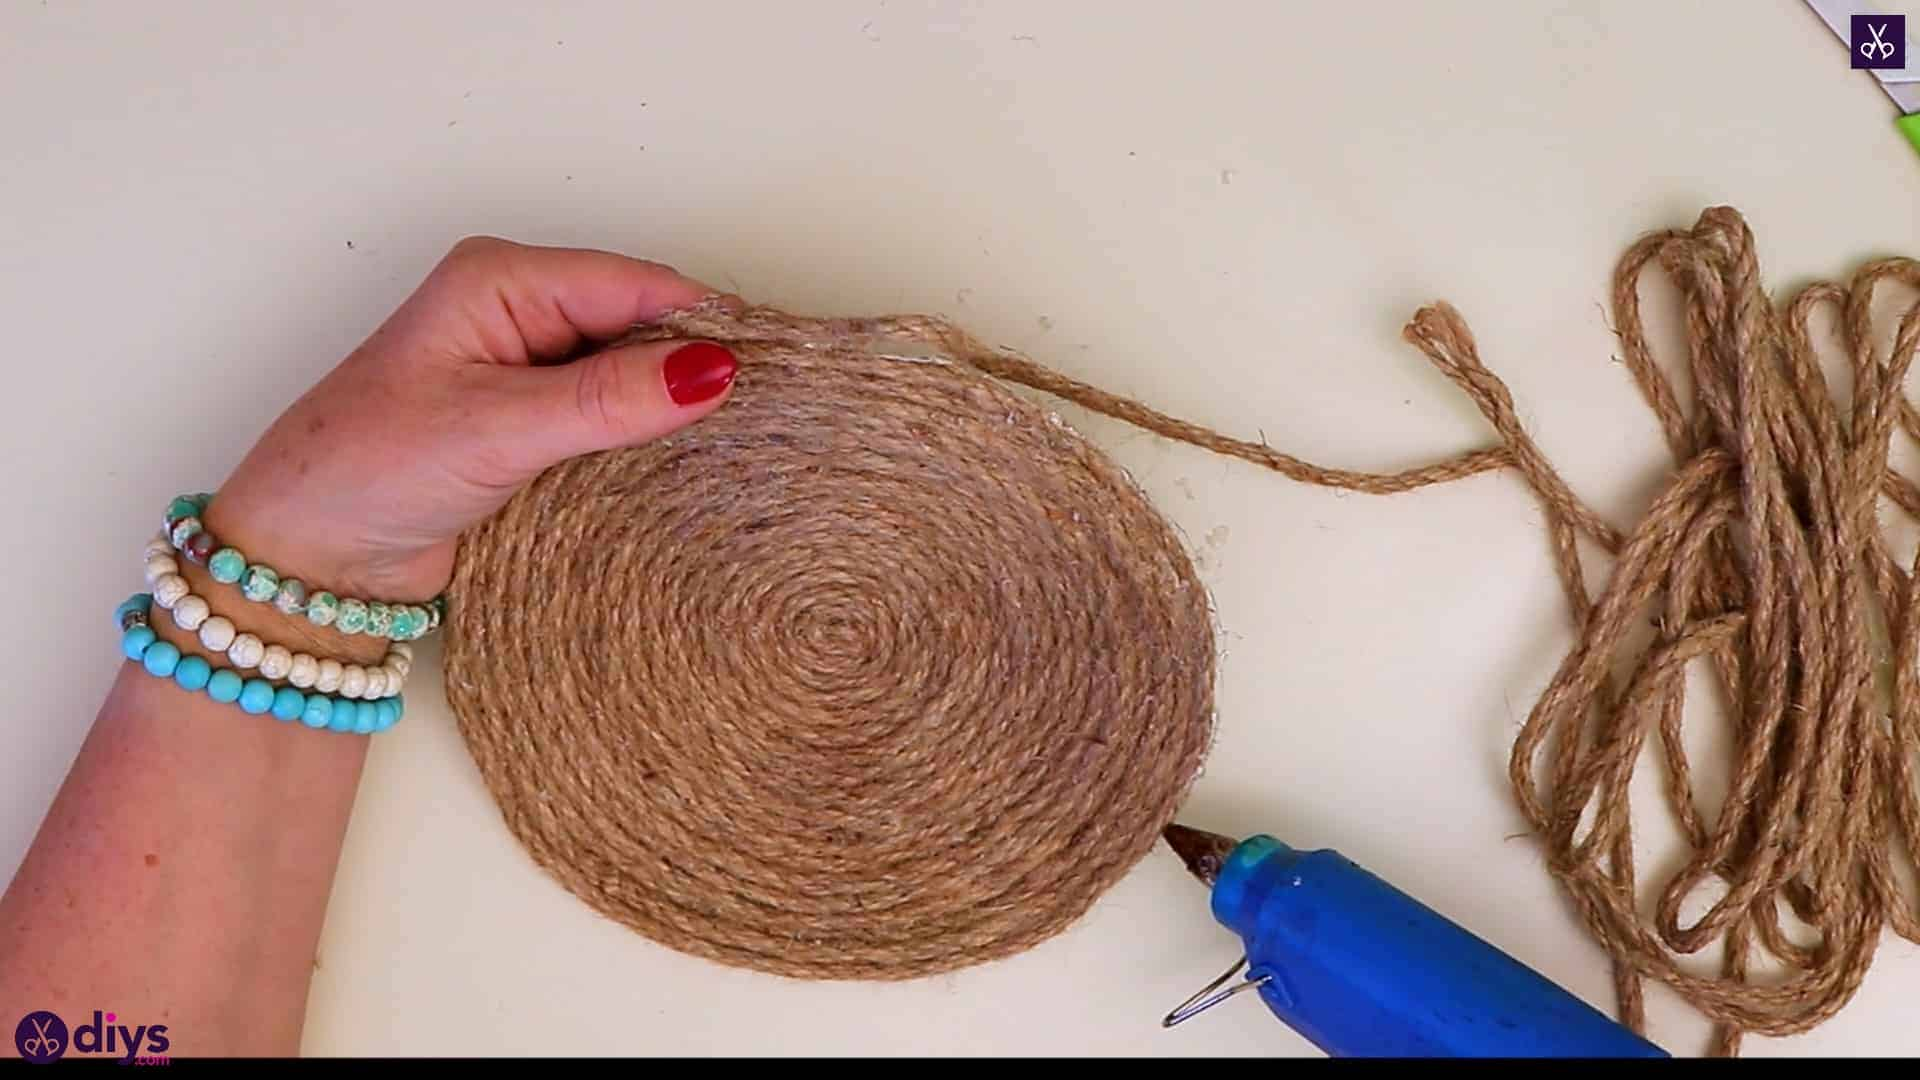 Diy round jute placemat step 4a